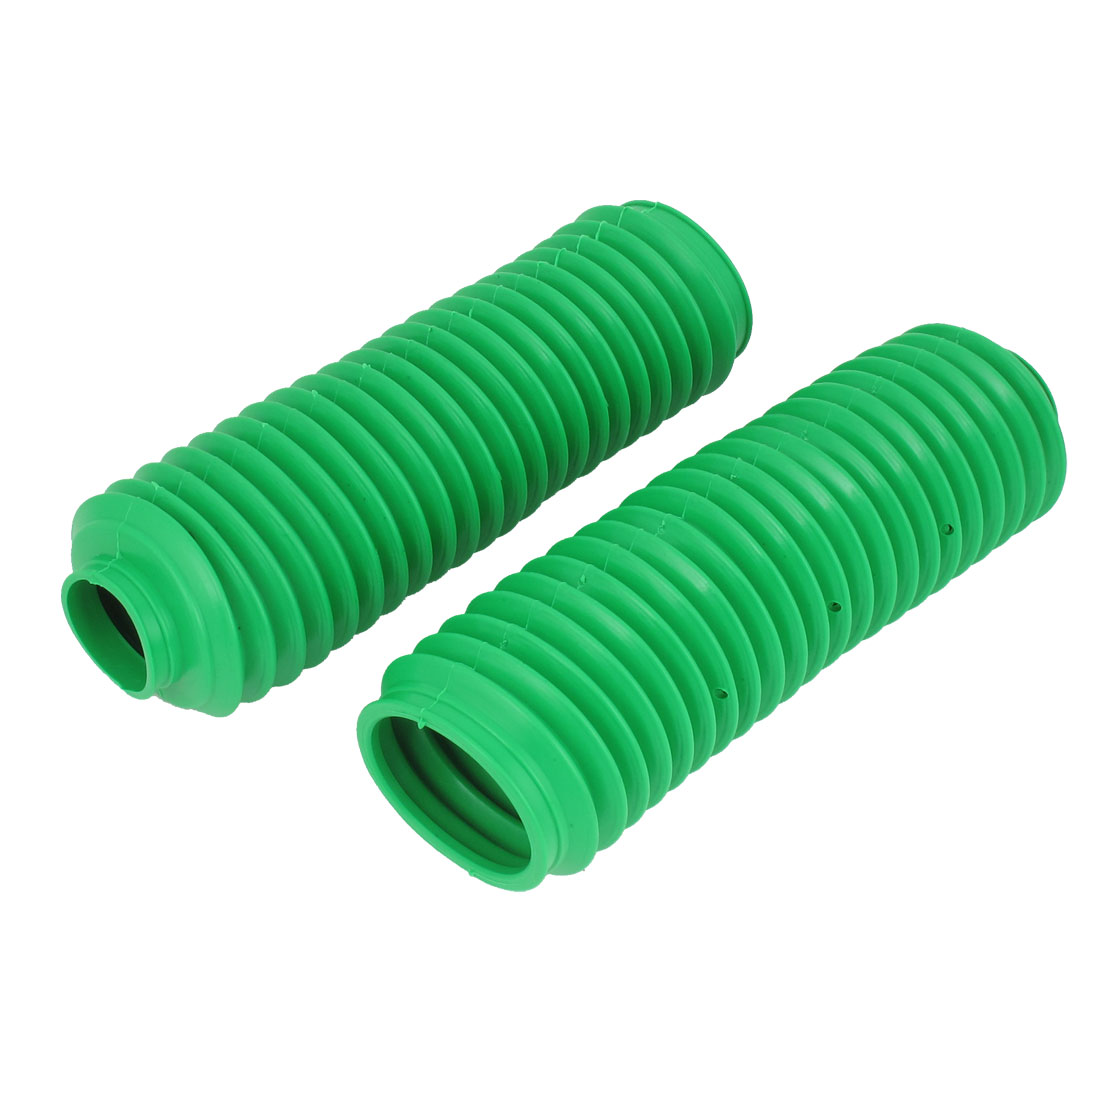 Autobicycle Green Rubber Front Shock Absorber Protection Dust Cover Pair 24cm Long